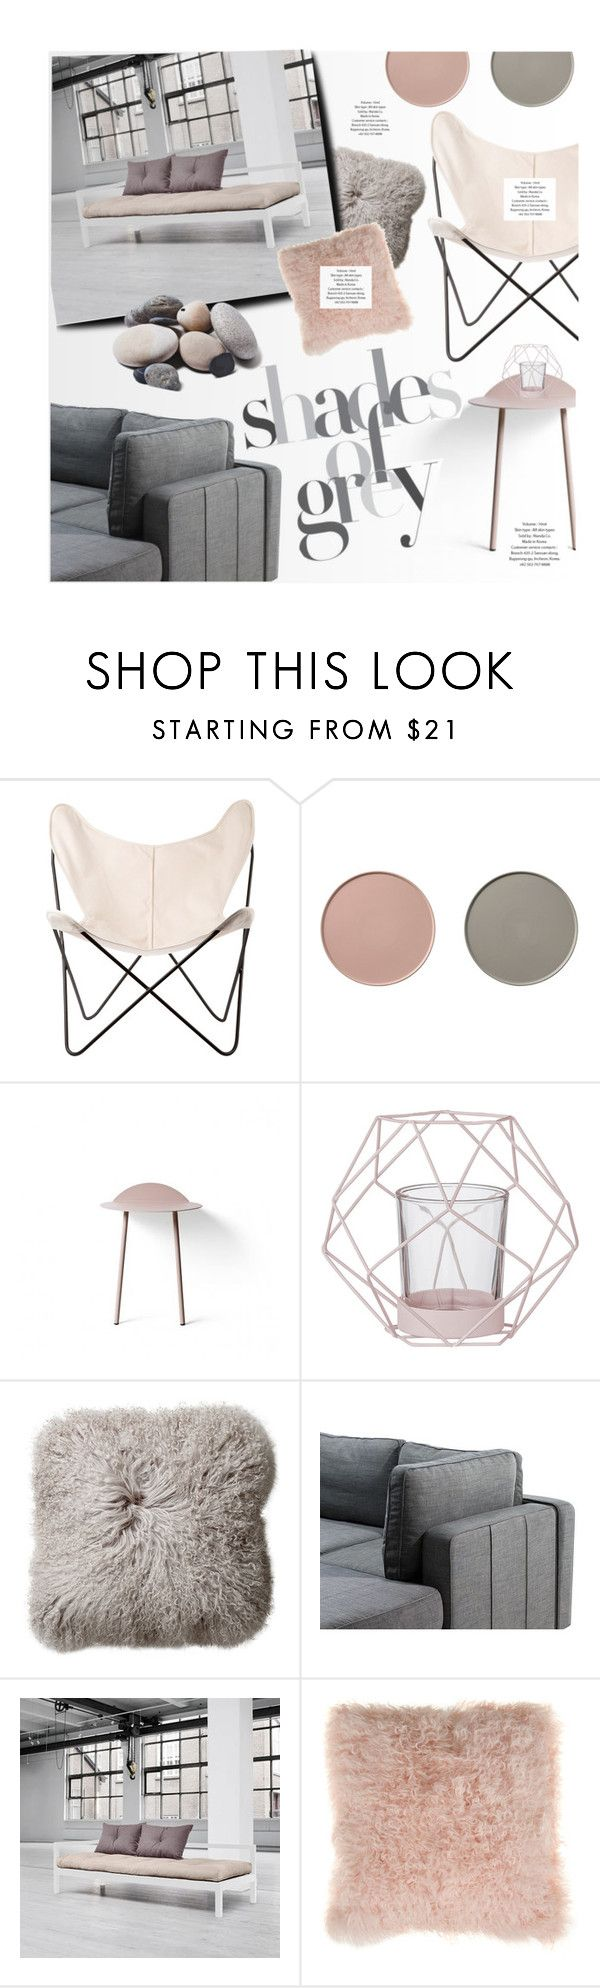 """Untitled #808"" by intellectual-blackness on Polyvore featuring interior, interiors, interior design, home, home decor, interior decorating, Bloomingville, Menu, Quarry and Home"